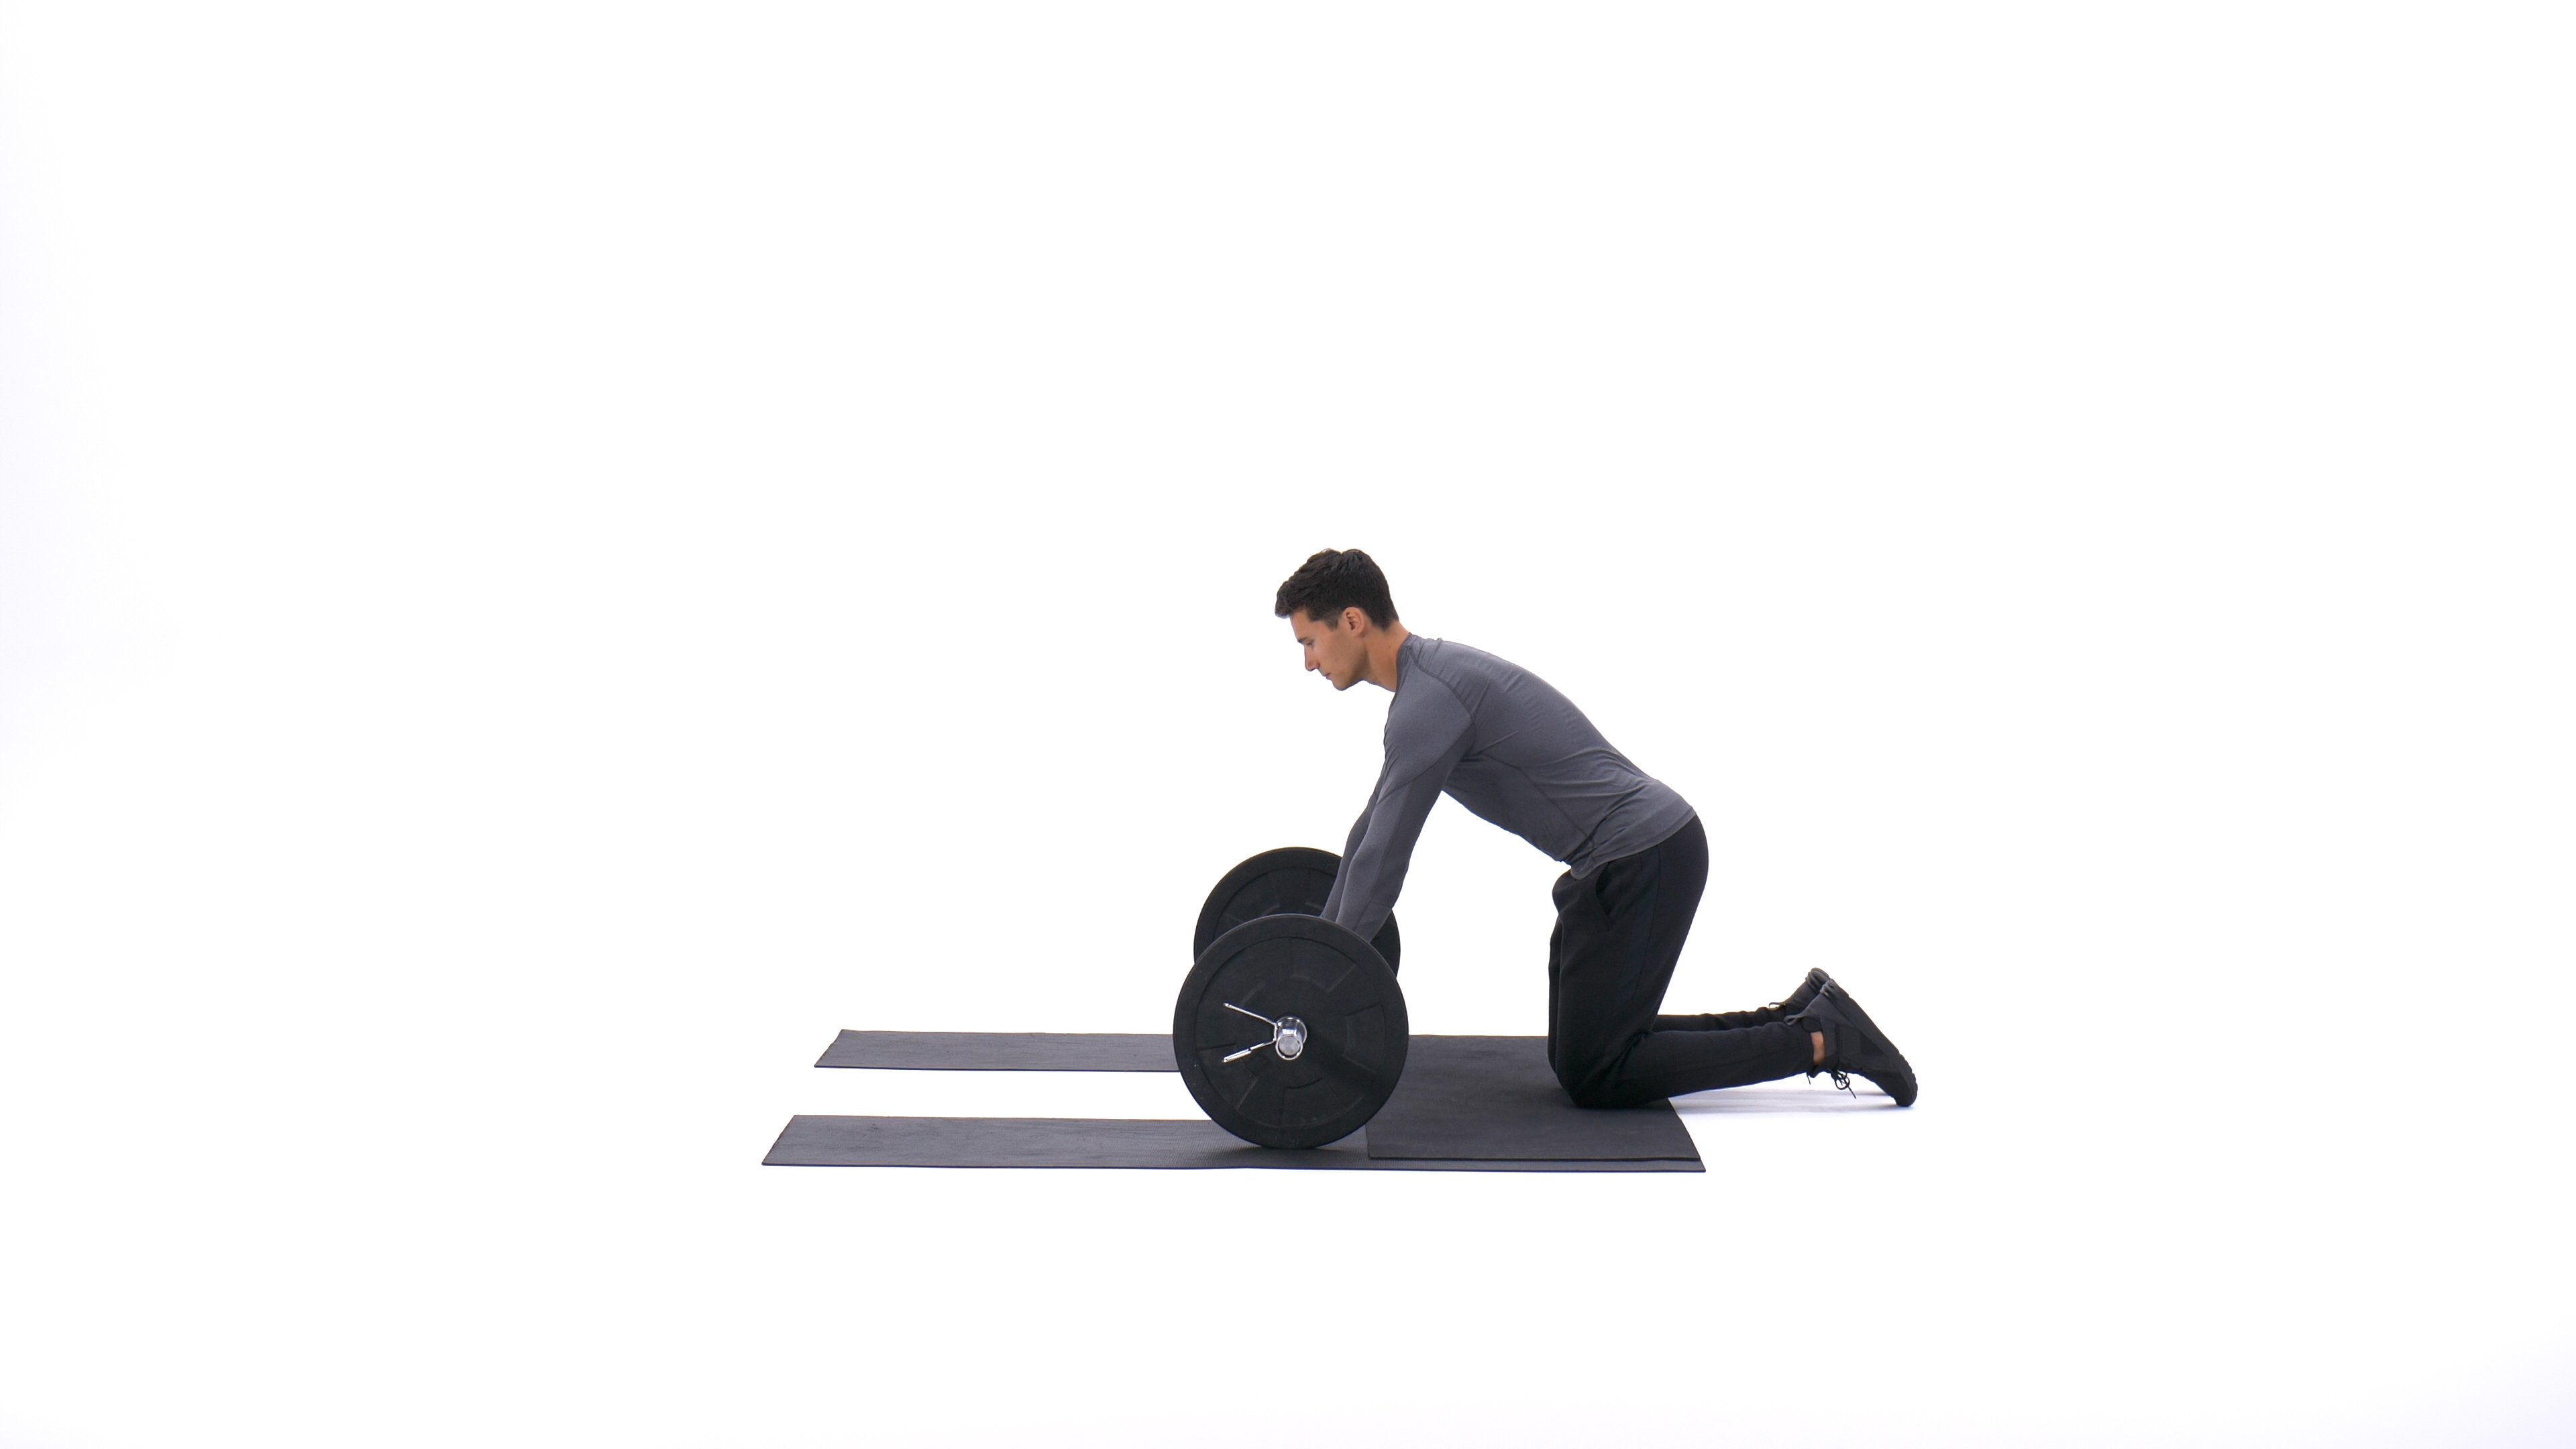 Barbell roll-out image